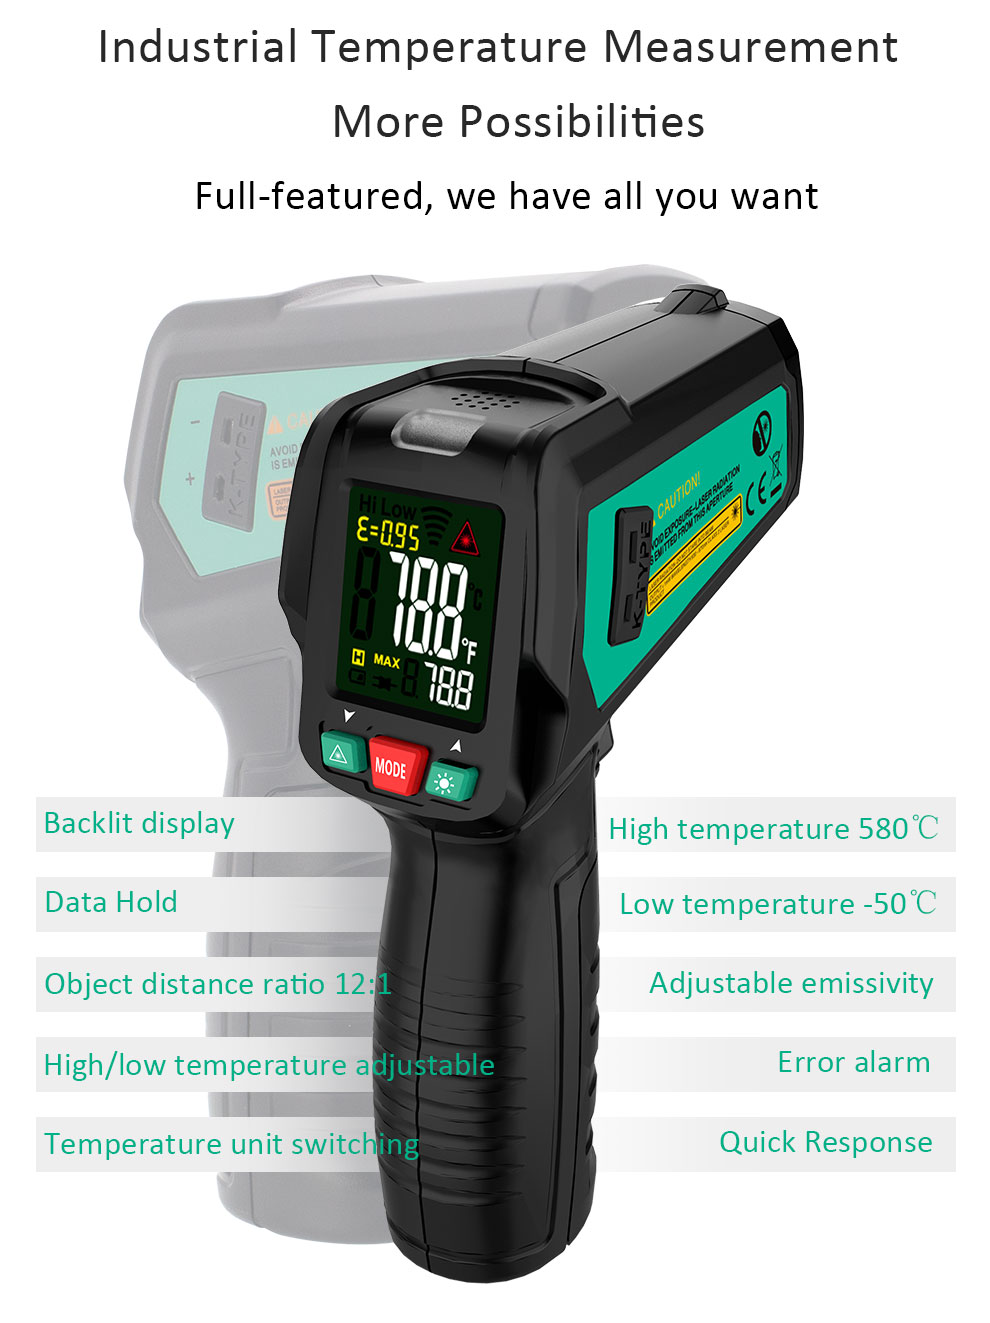 High Precision Non Contact Thermometer with K Probe and LCD Display to Check Body Temperature 12